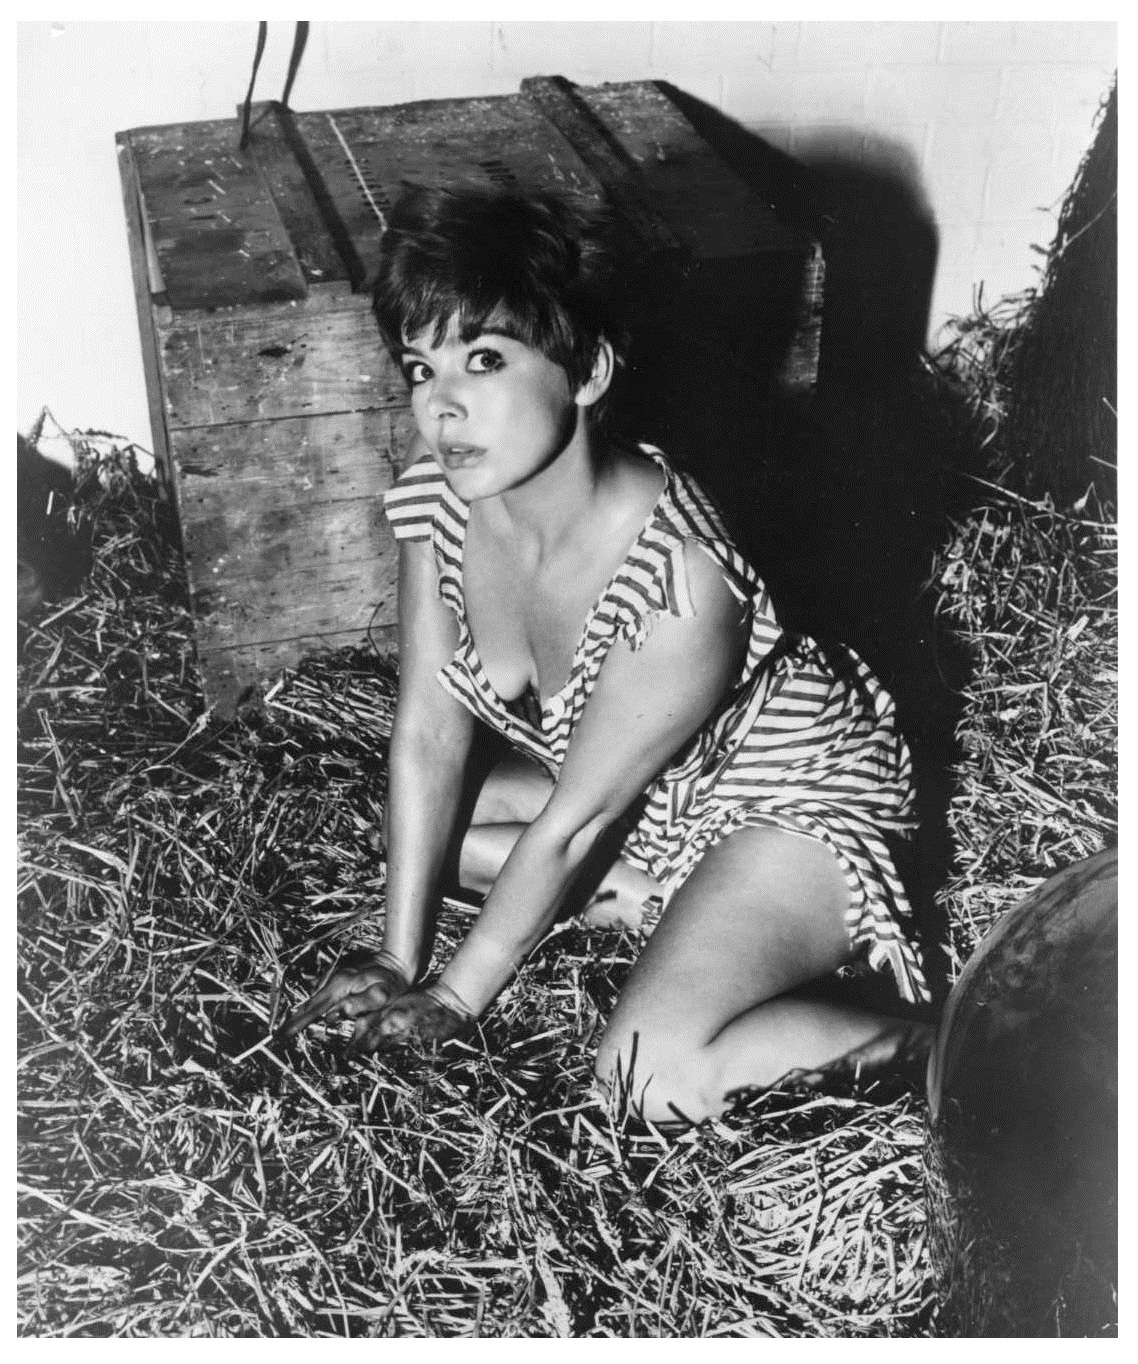 Janet Munro nude (65 foto and video), Ass, Paparazzi, Feet, cleavage 2017